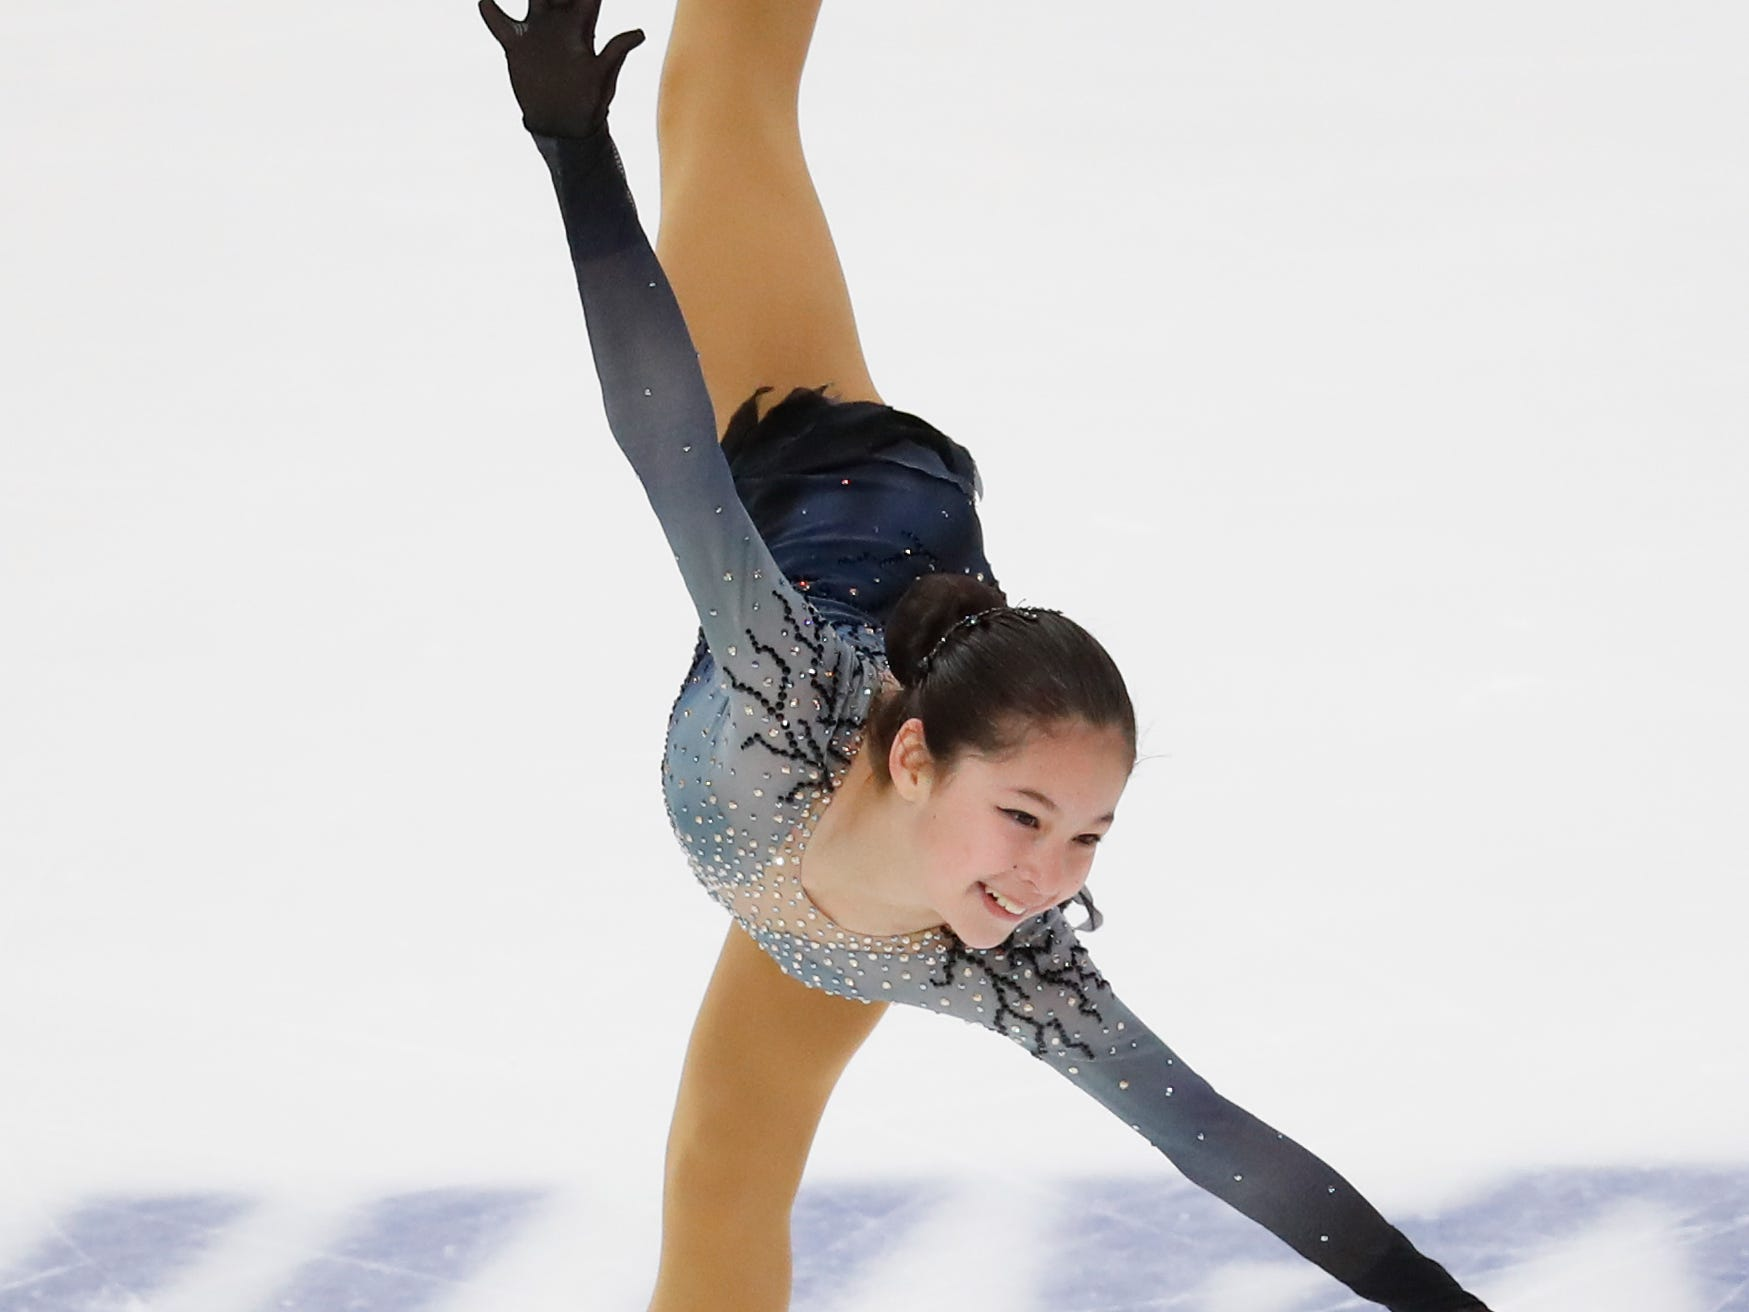 Alysa Liu takes first place in the women's free skate at the U.S. Figure Skating Championships, Friday.